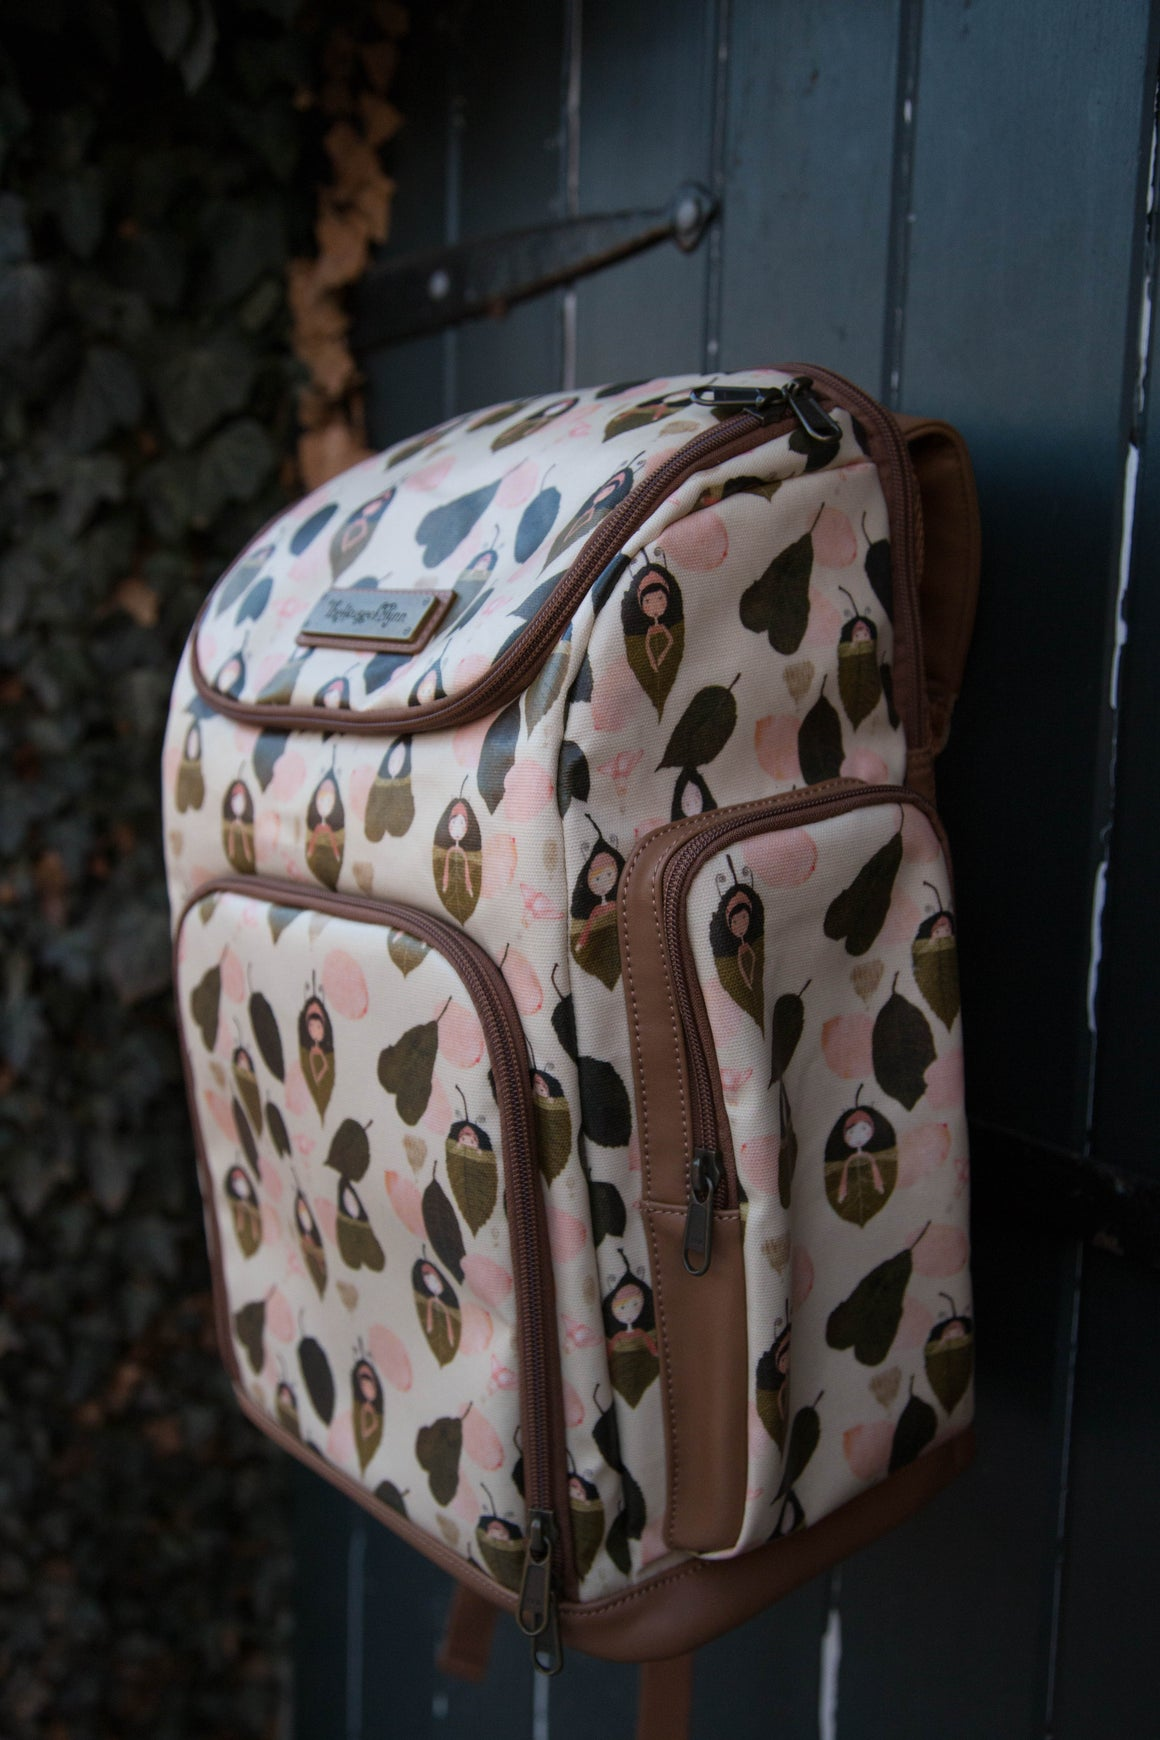 NEW! Leaf Sleepers Diaper Bag - Backpack